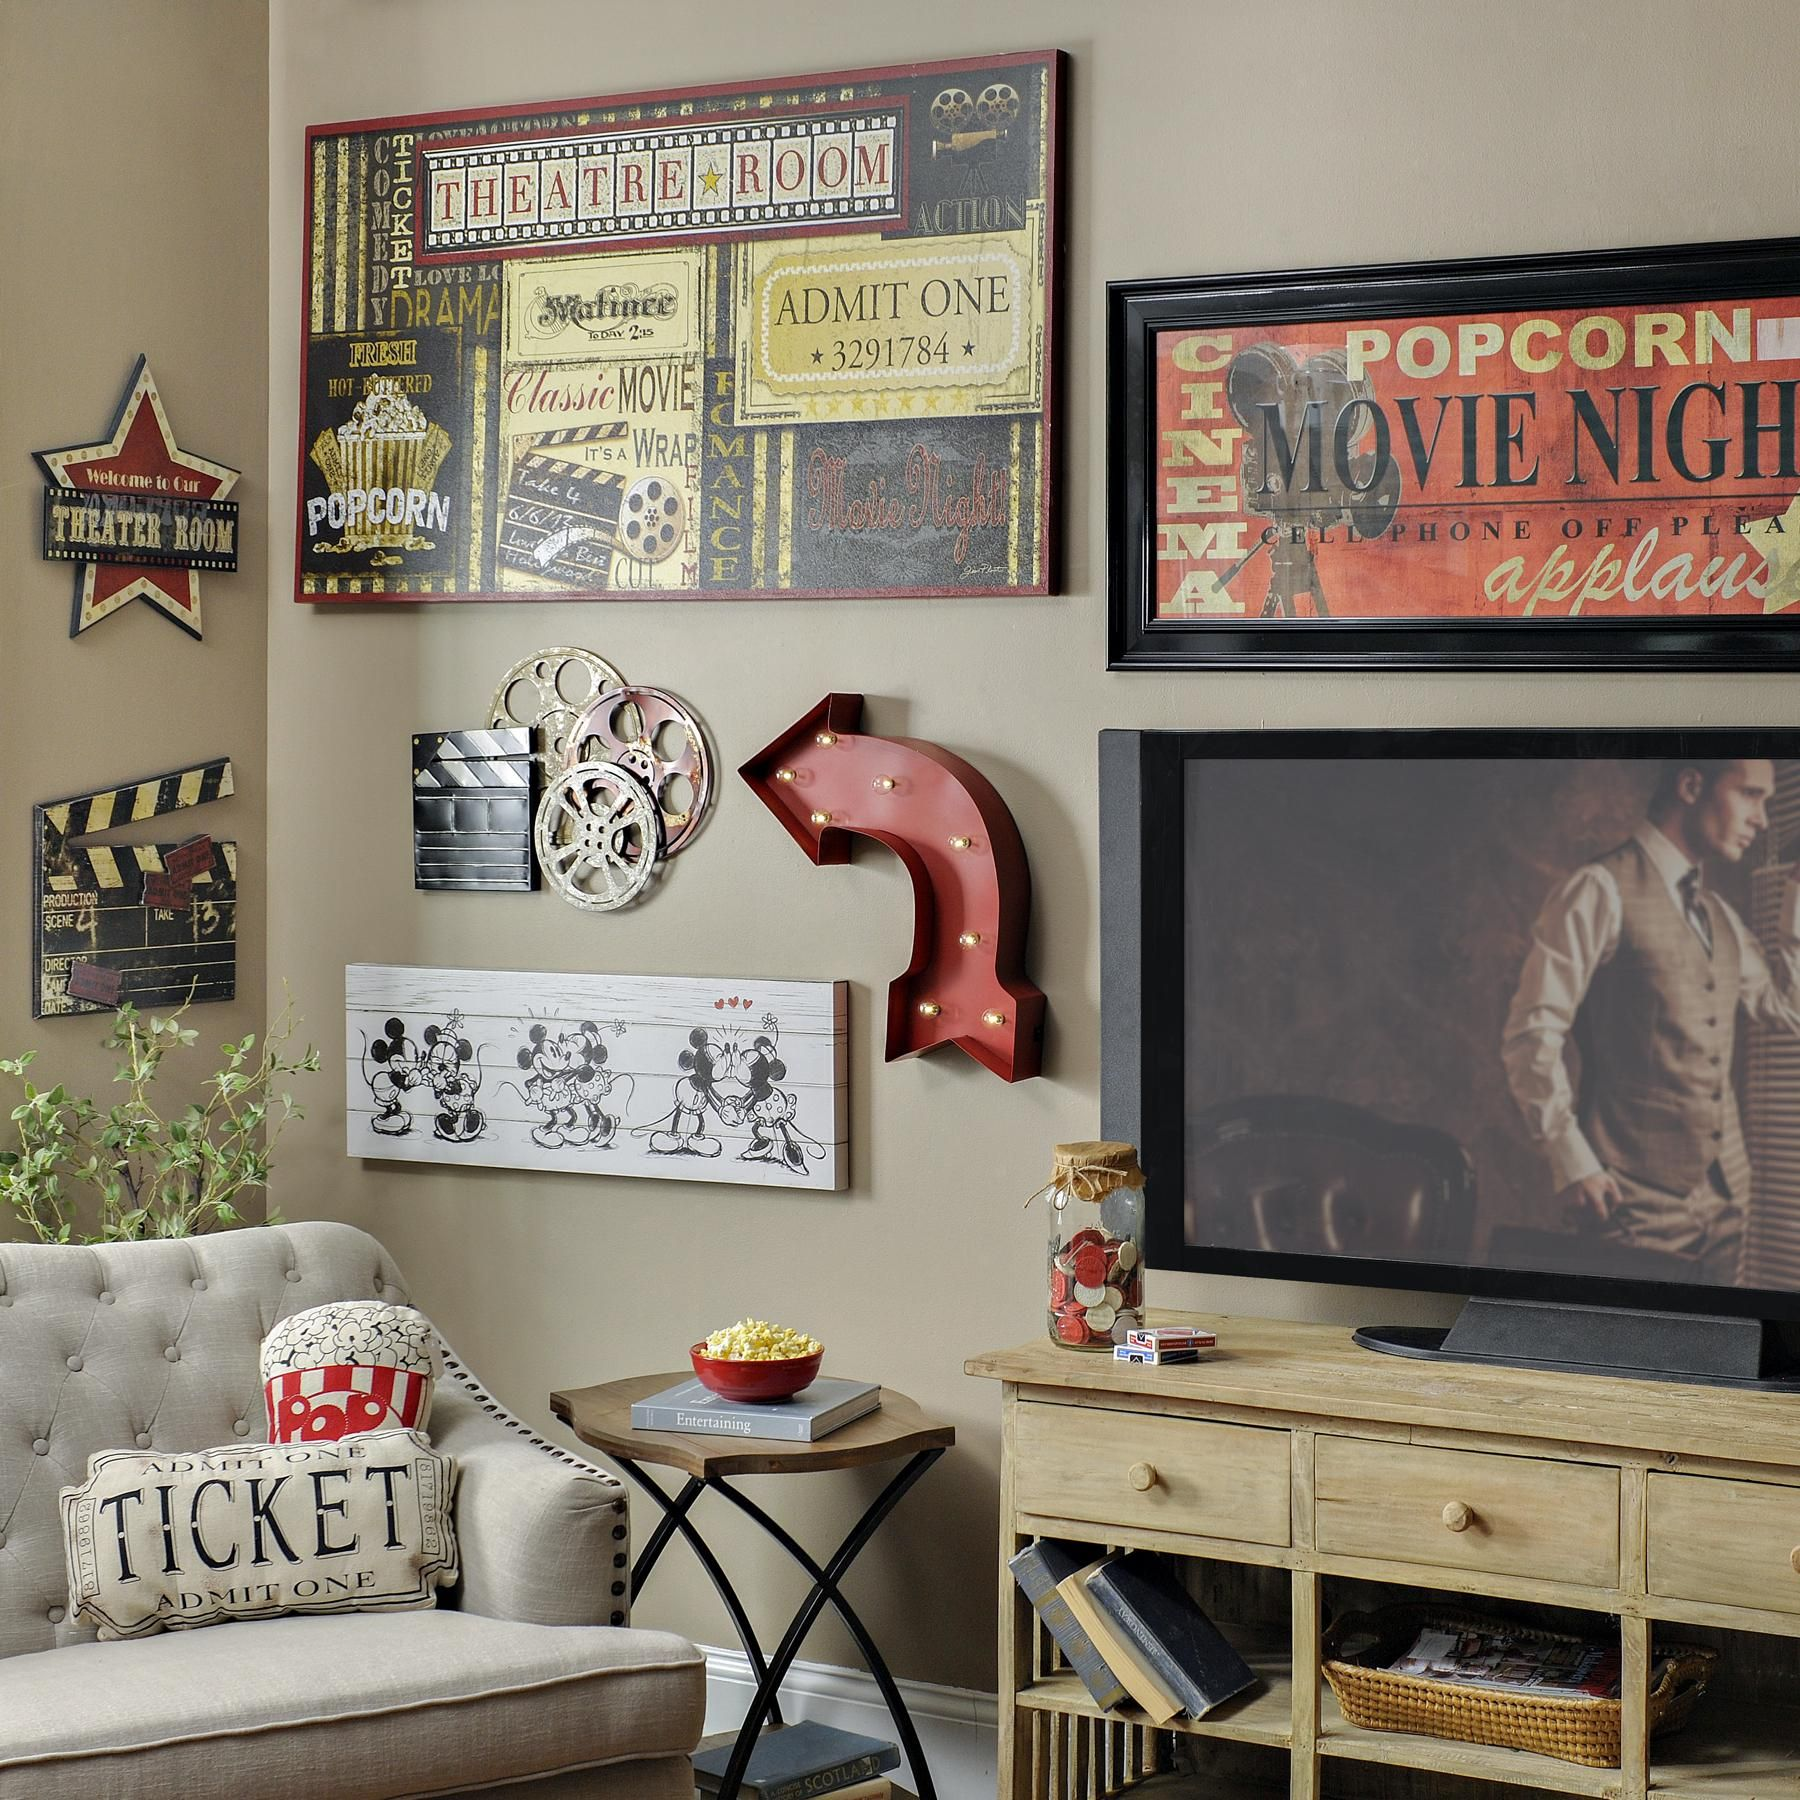 Tips For Home Theater Room Design Ideas: Film Lovers, We Have The Movie Decor You've Been Searching